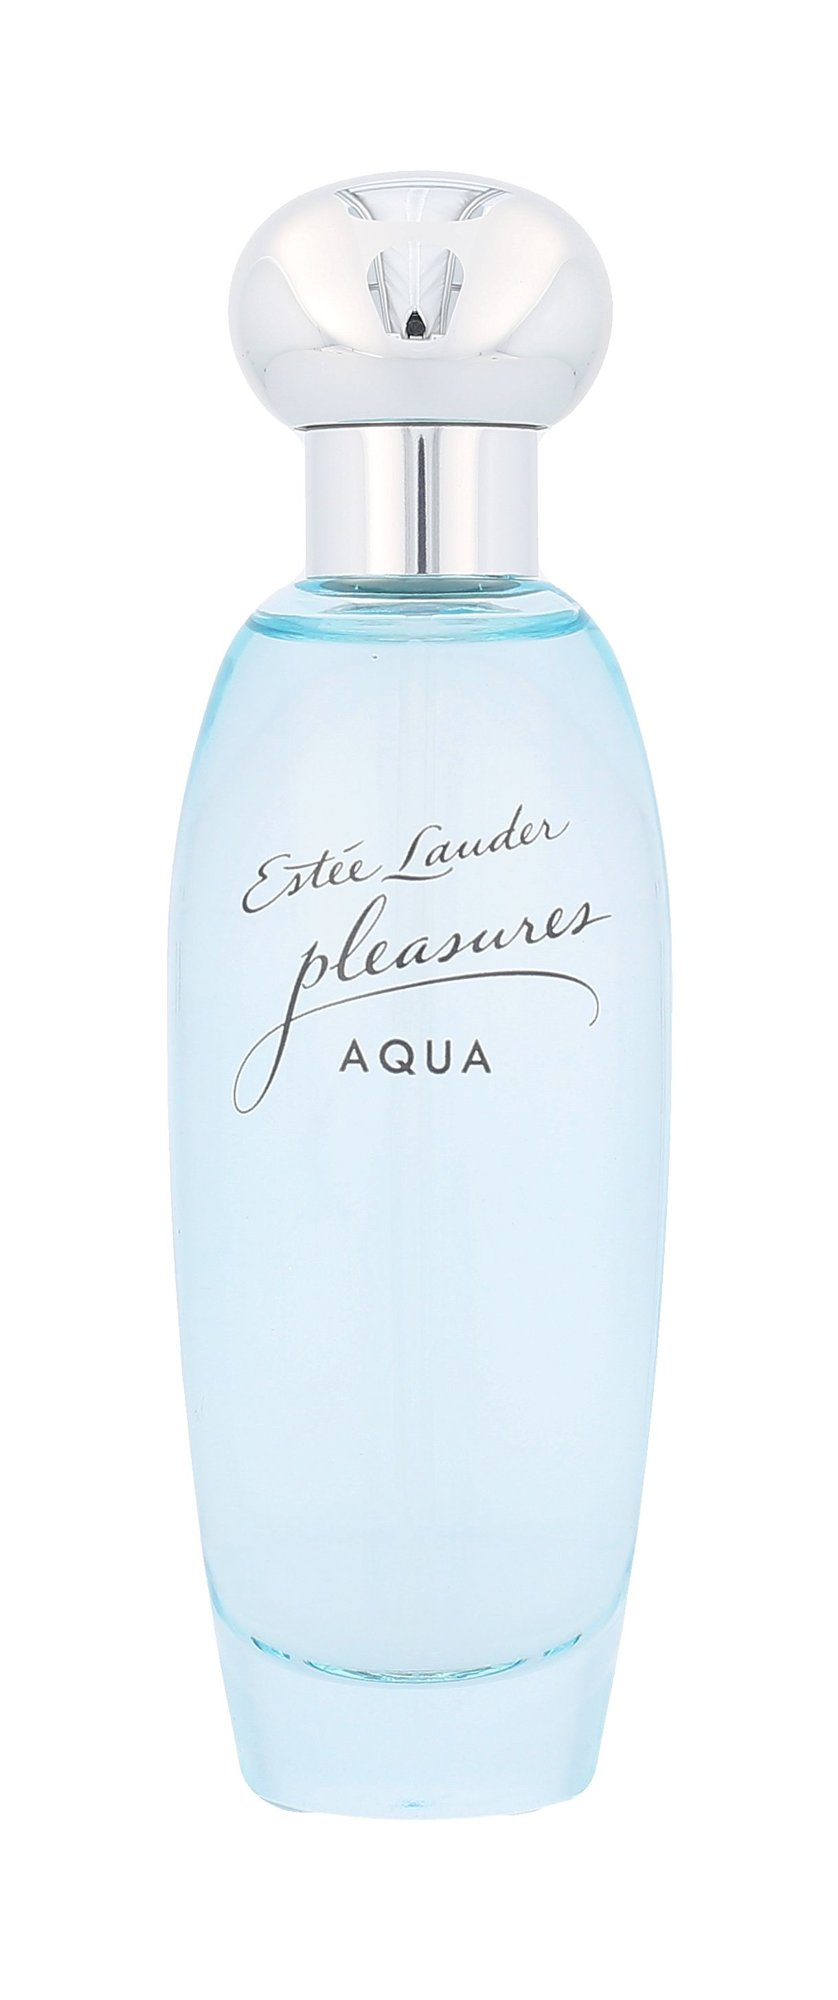 Estée Lauder Pleasures Aqua EDP 50ml